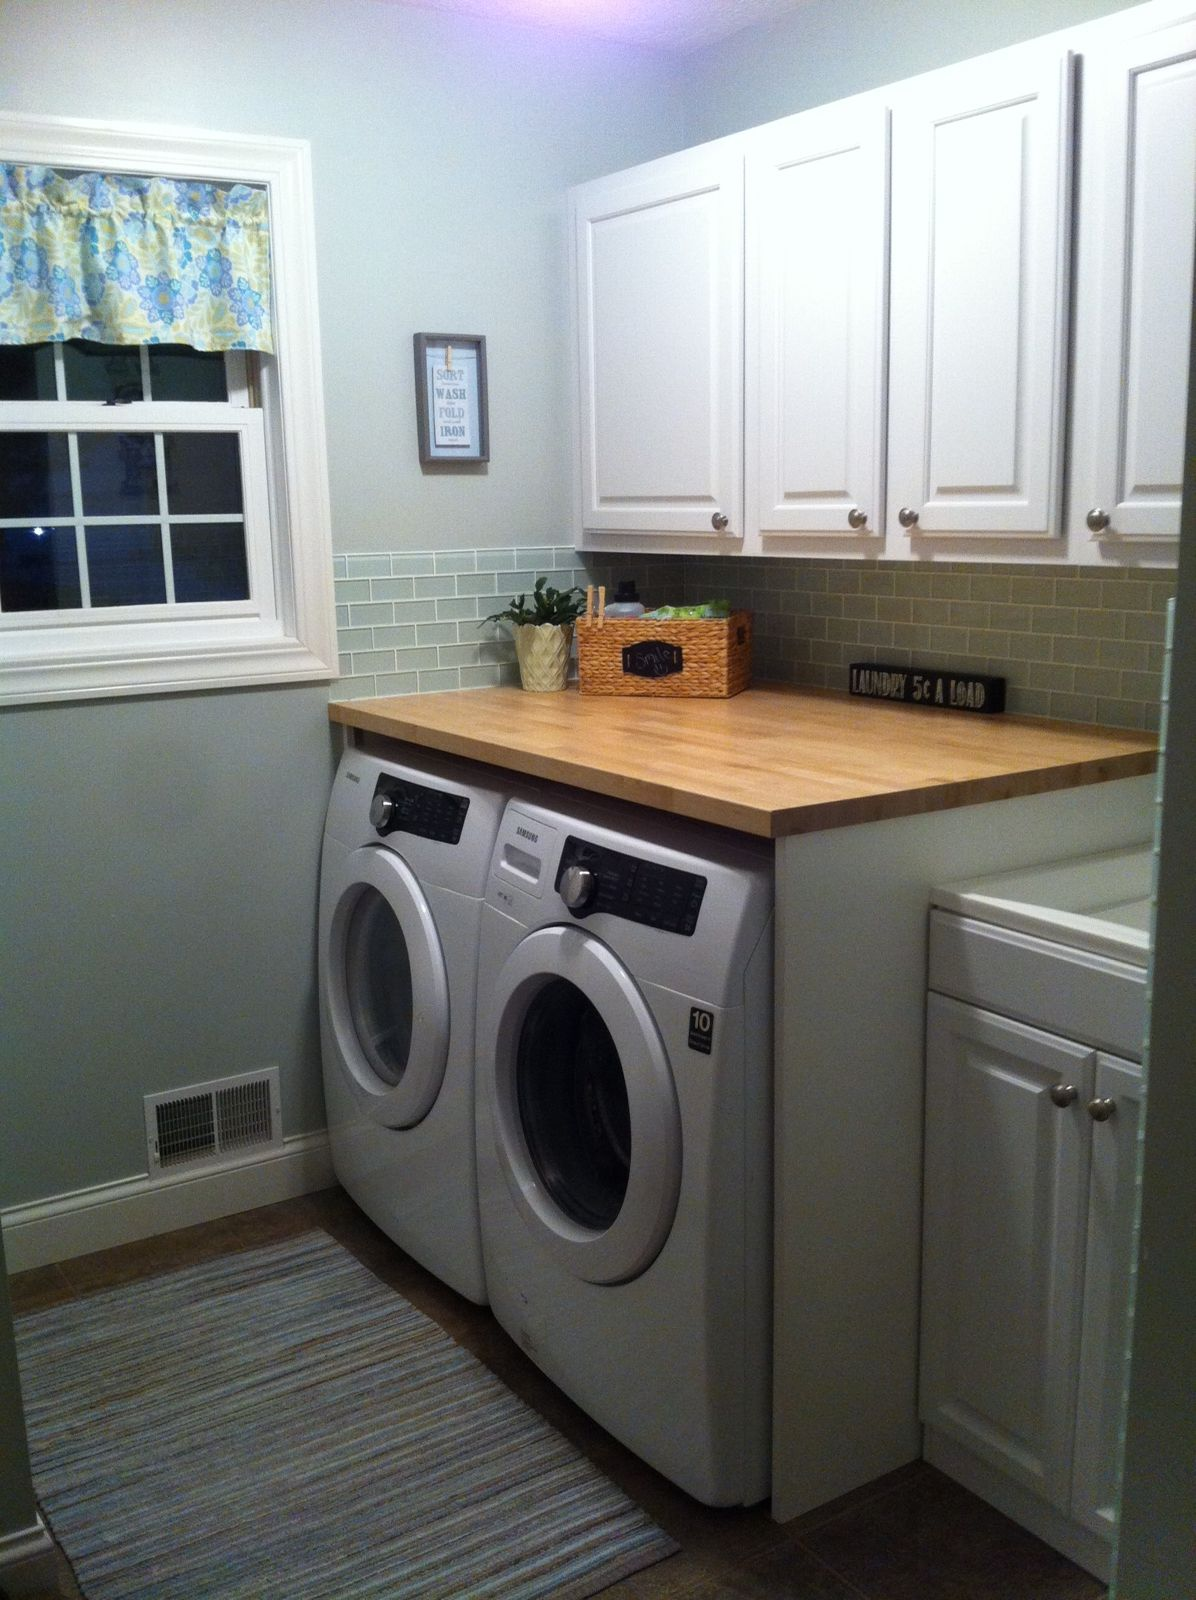 Countertop Glass Washer Our New Laundry Room Complete With Butcher Block Countertop For